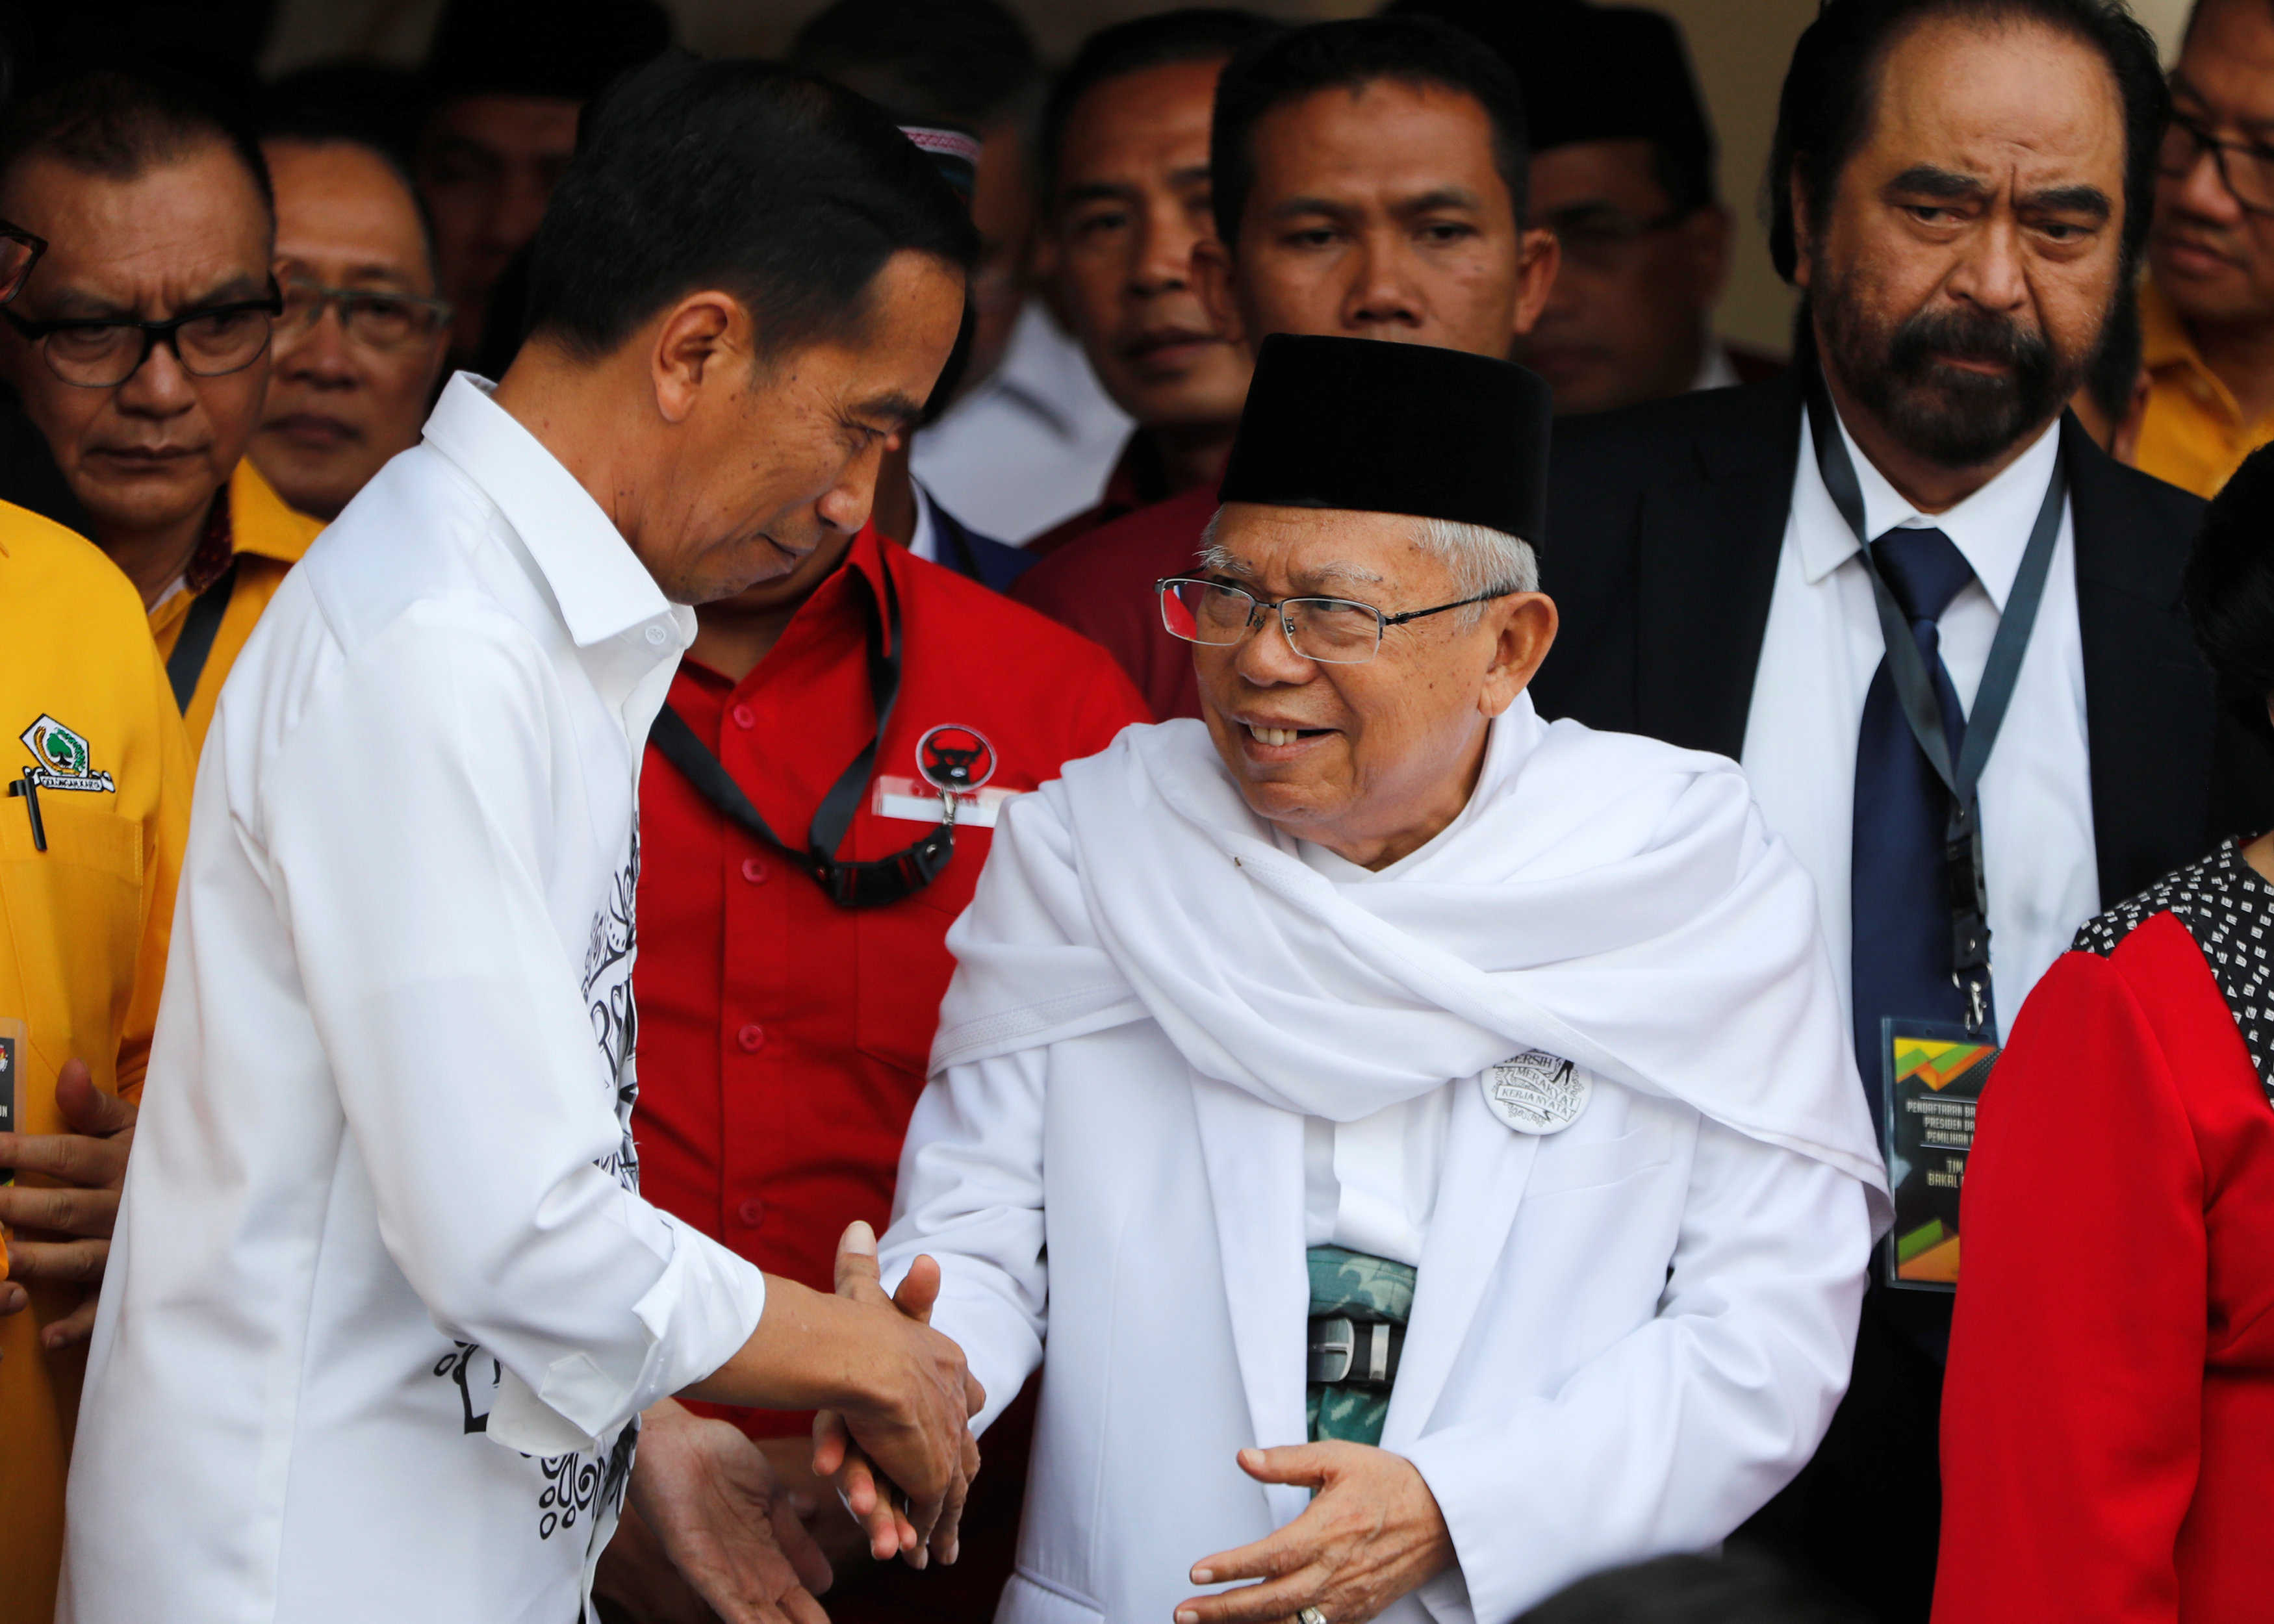 Indonesia: President highlights nationalism amid controversy